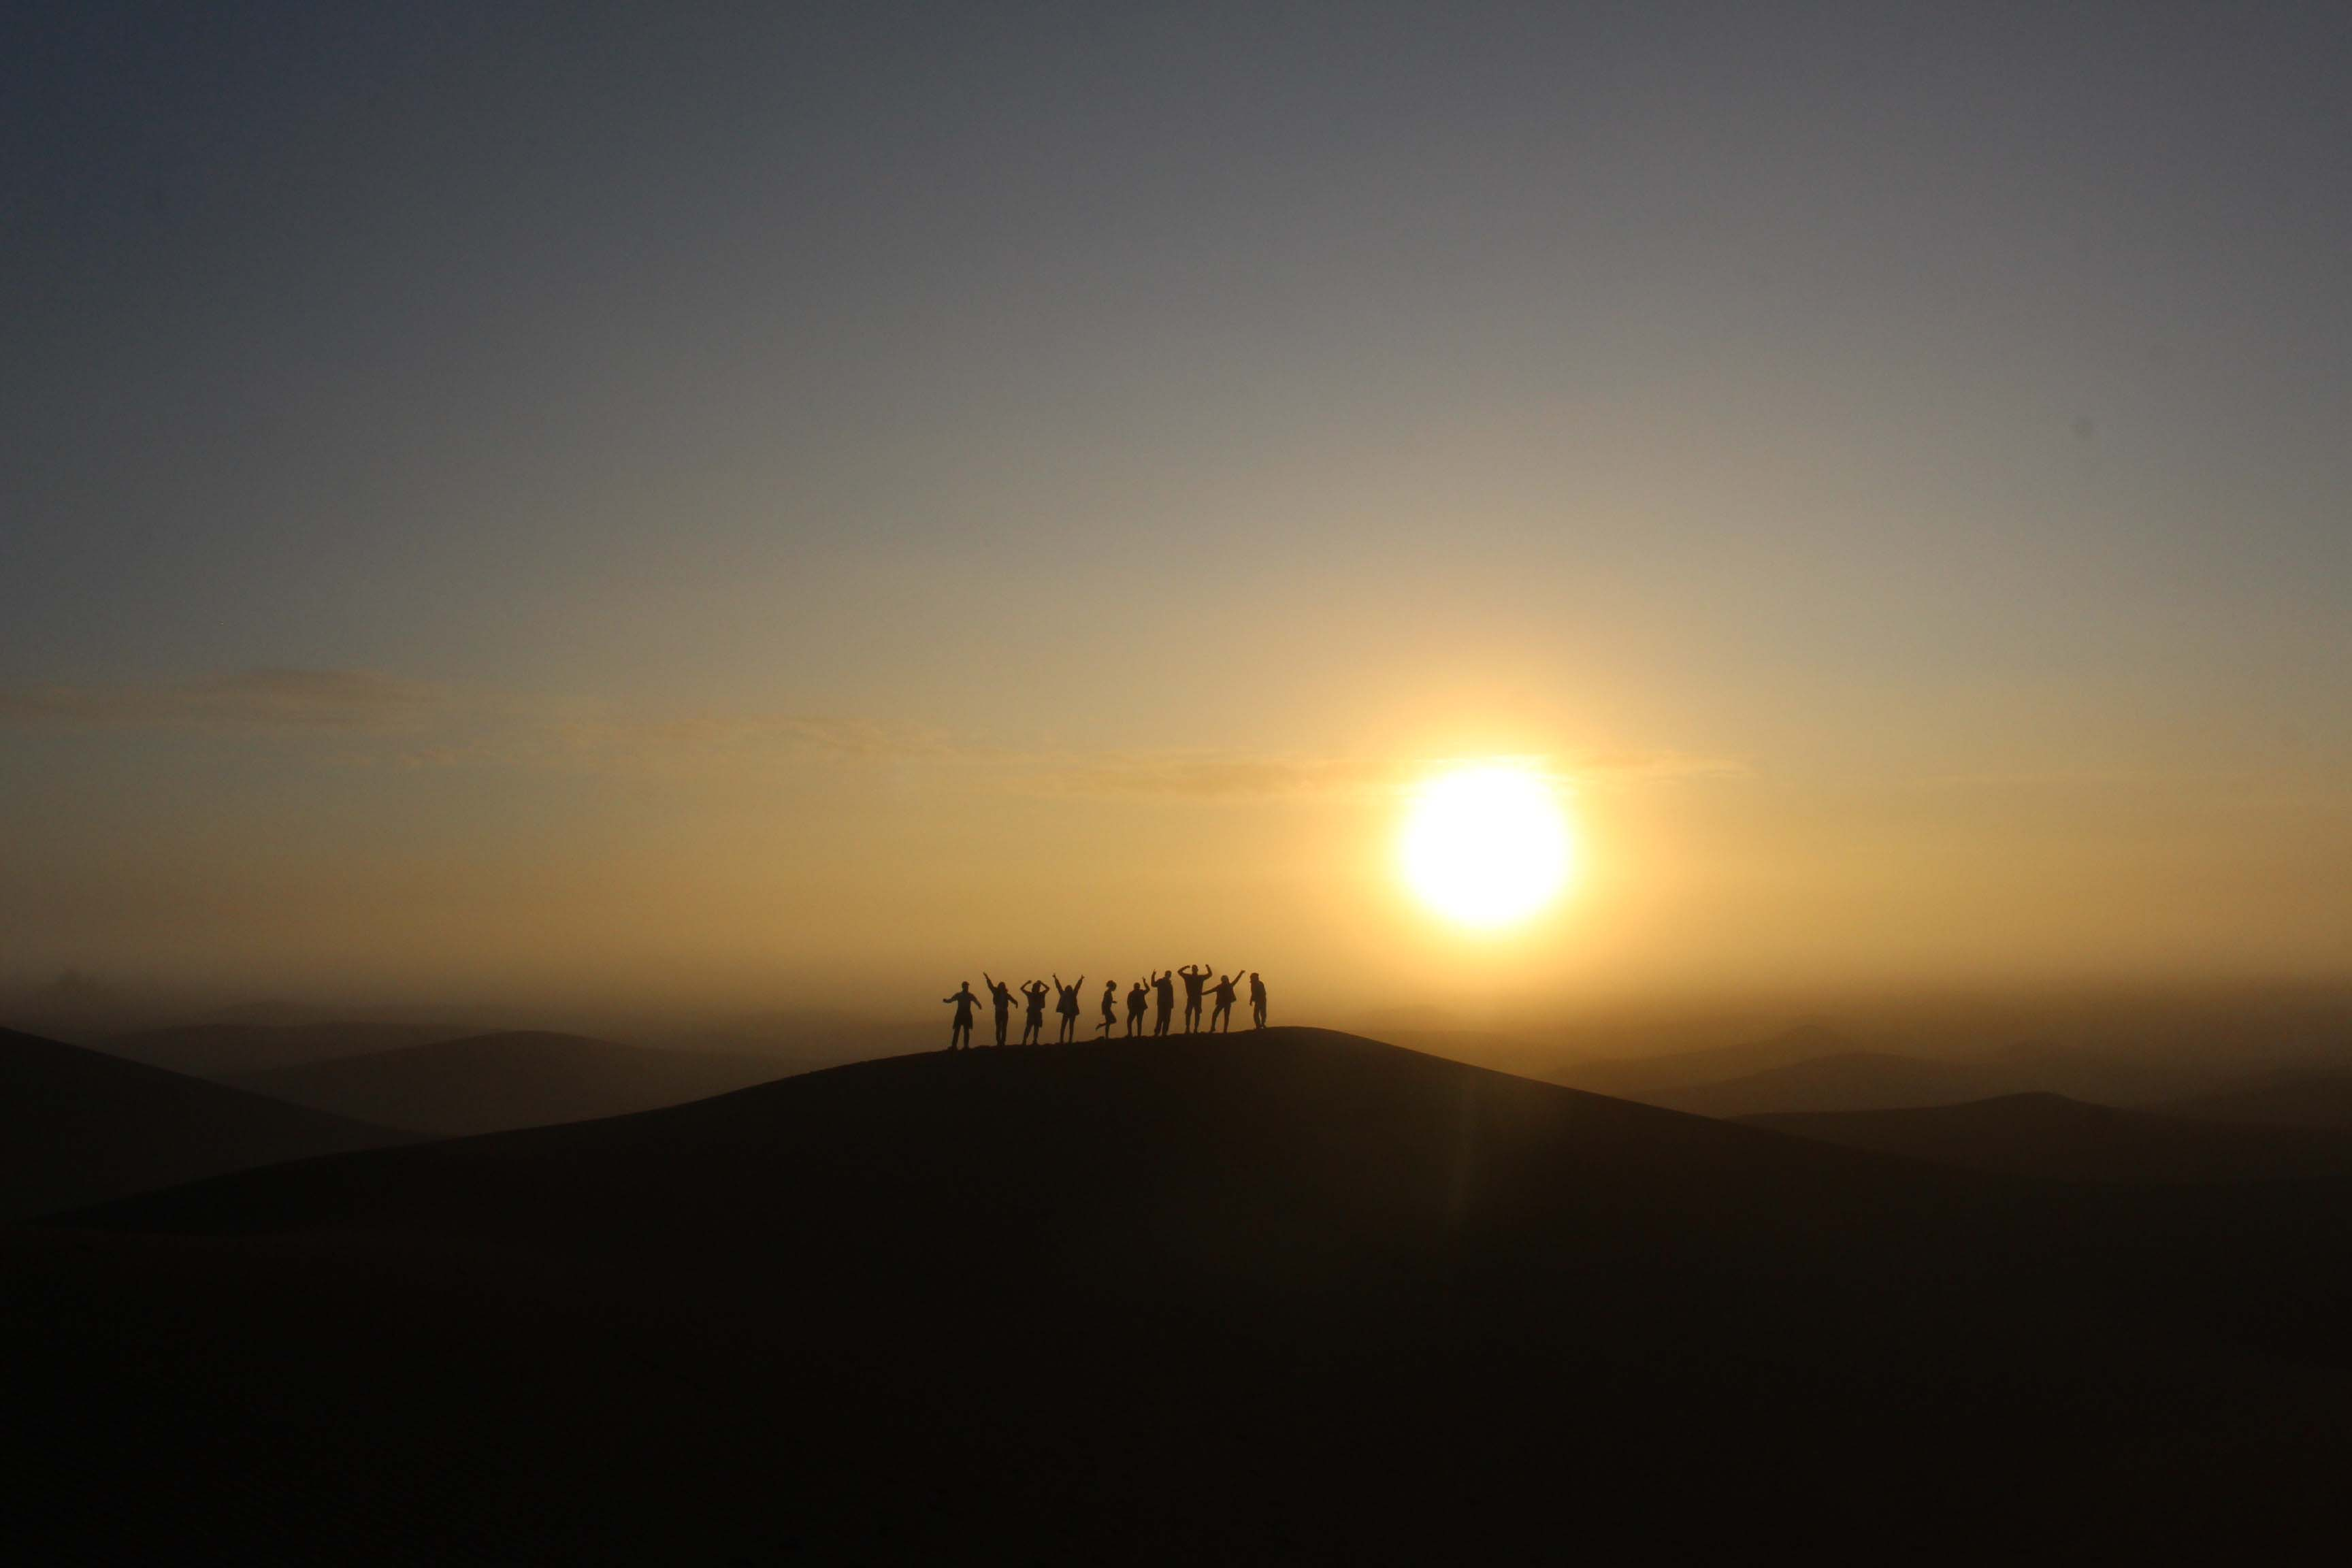 Silhouettes in the Sahara by Heather Needham